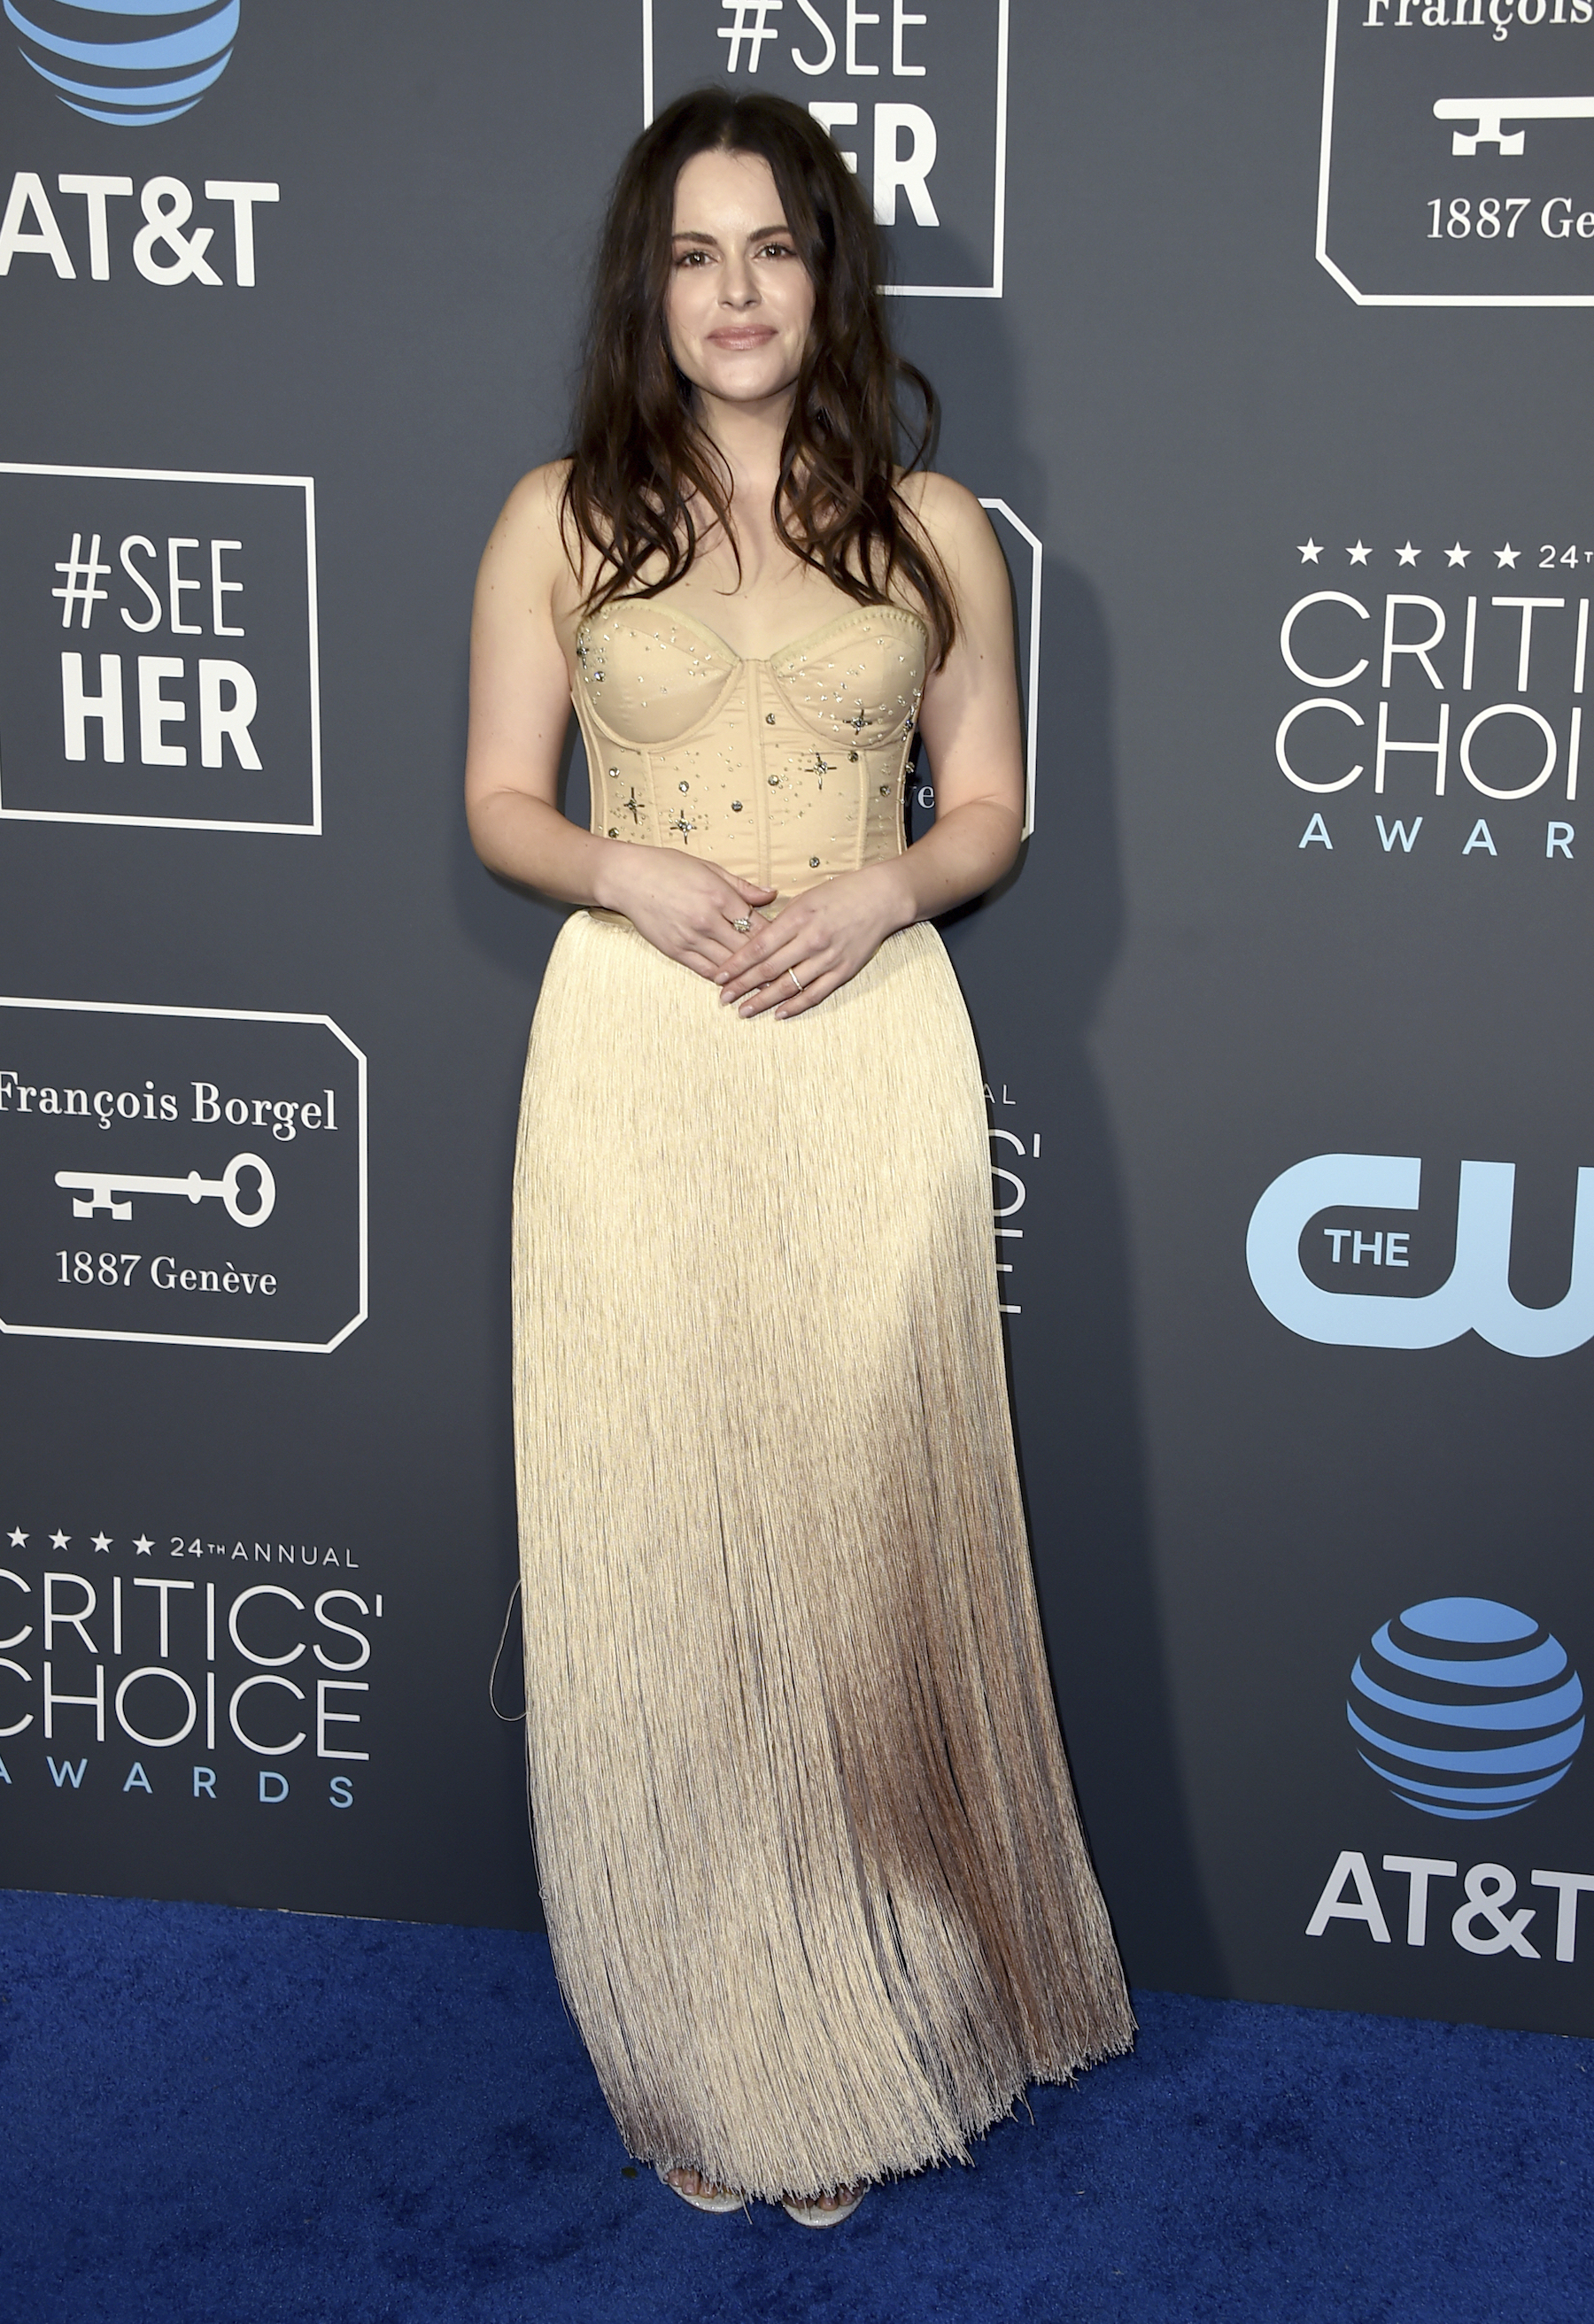 "<div class=""meta image-caption""><div class=""origin-logo origin-image ap""><span>AP</span></div><span class=""caption-text"">Emily Hampshire arrives at the 24th annual Critics' Choice Awards on Sunday, Jan. 13, 2019, at the Barker Hangar in Santa Monica, Calif. (Jordan Strauss/Invision/AP)</span></div>"